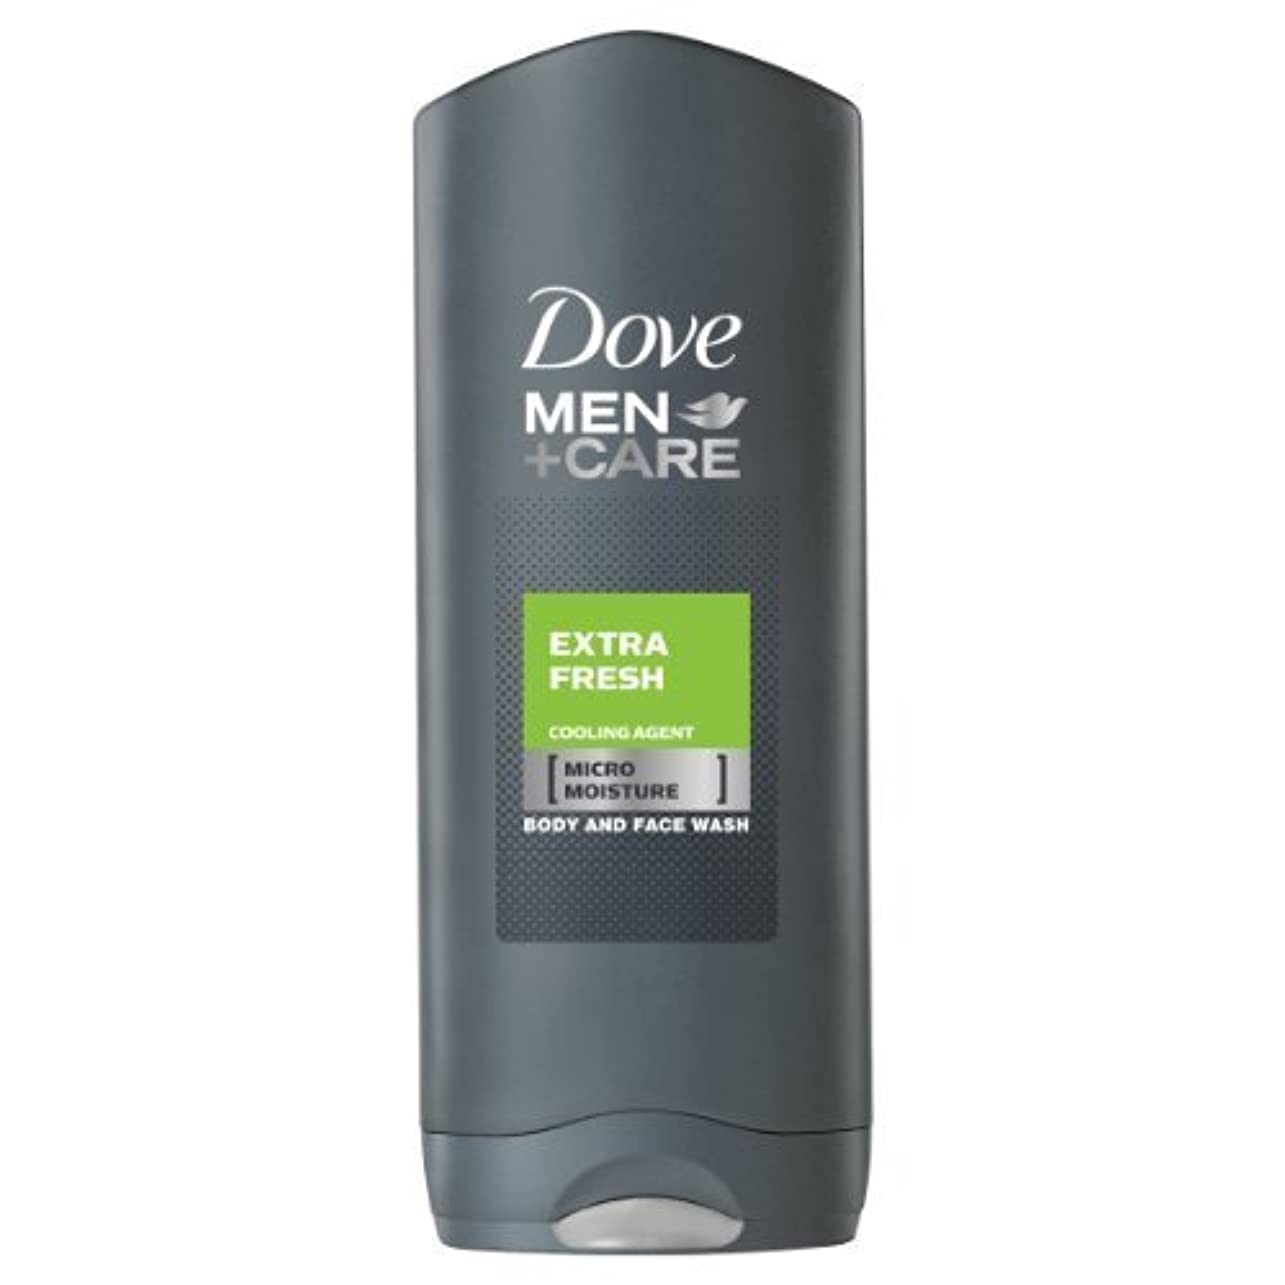 アイザックジム論争的Dove for Men Extra Fresh Body and Face Wash 250 ml by Dove [並行輸入品]